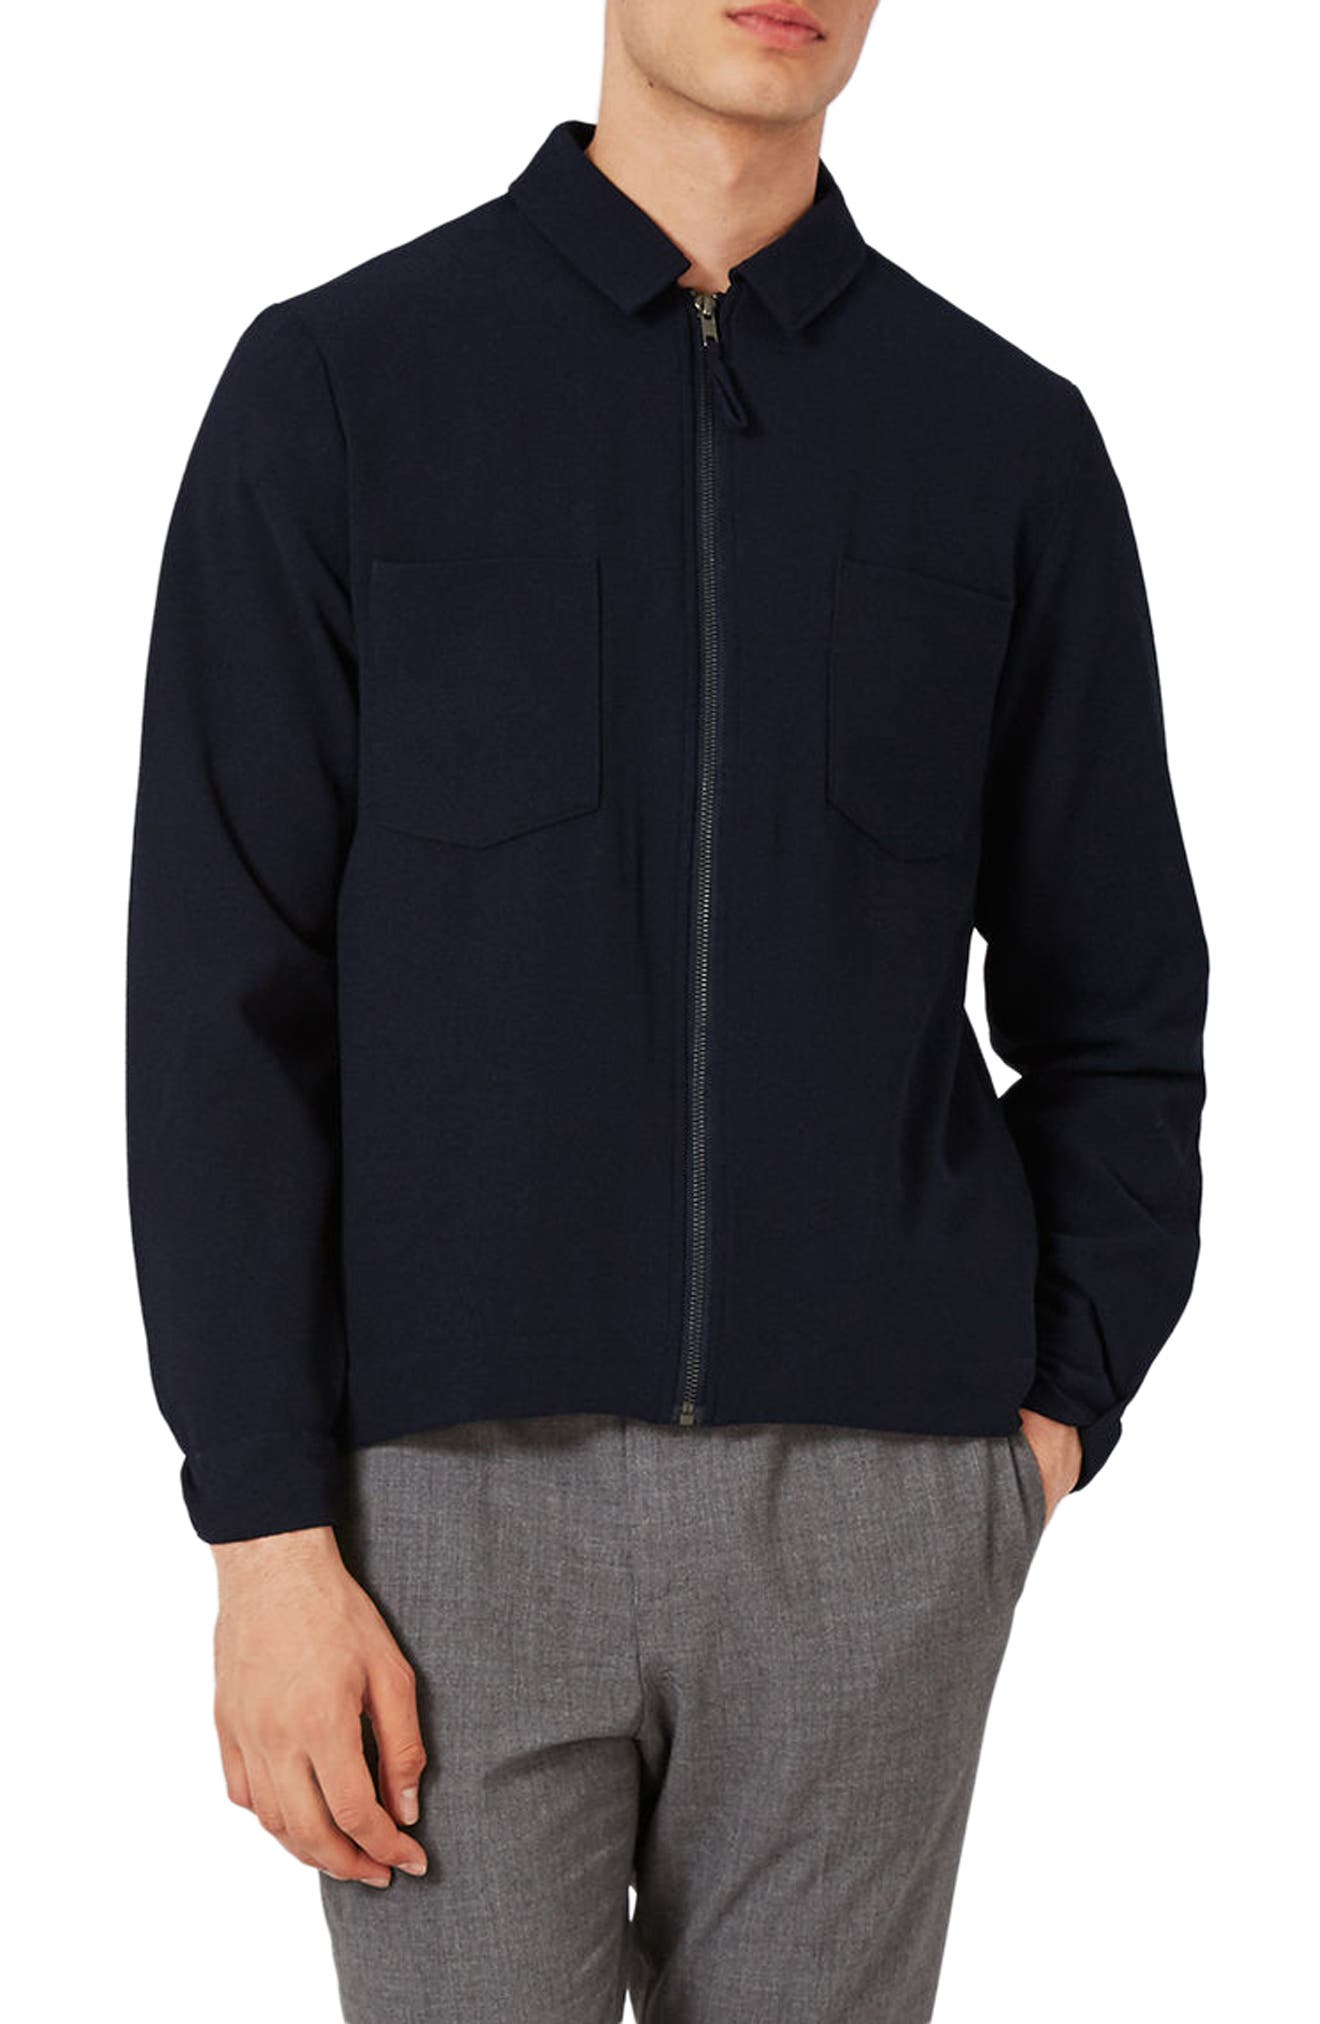 Lightweight Smart Jacket,                             Main thumbnail 1, color,                             Navy Blue